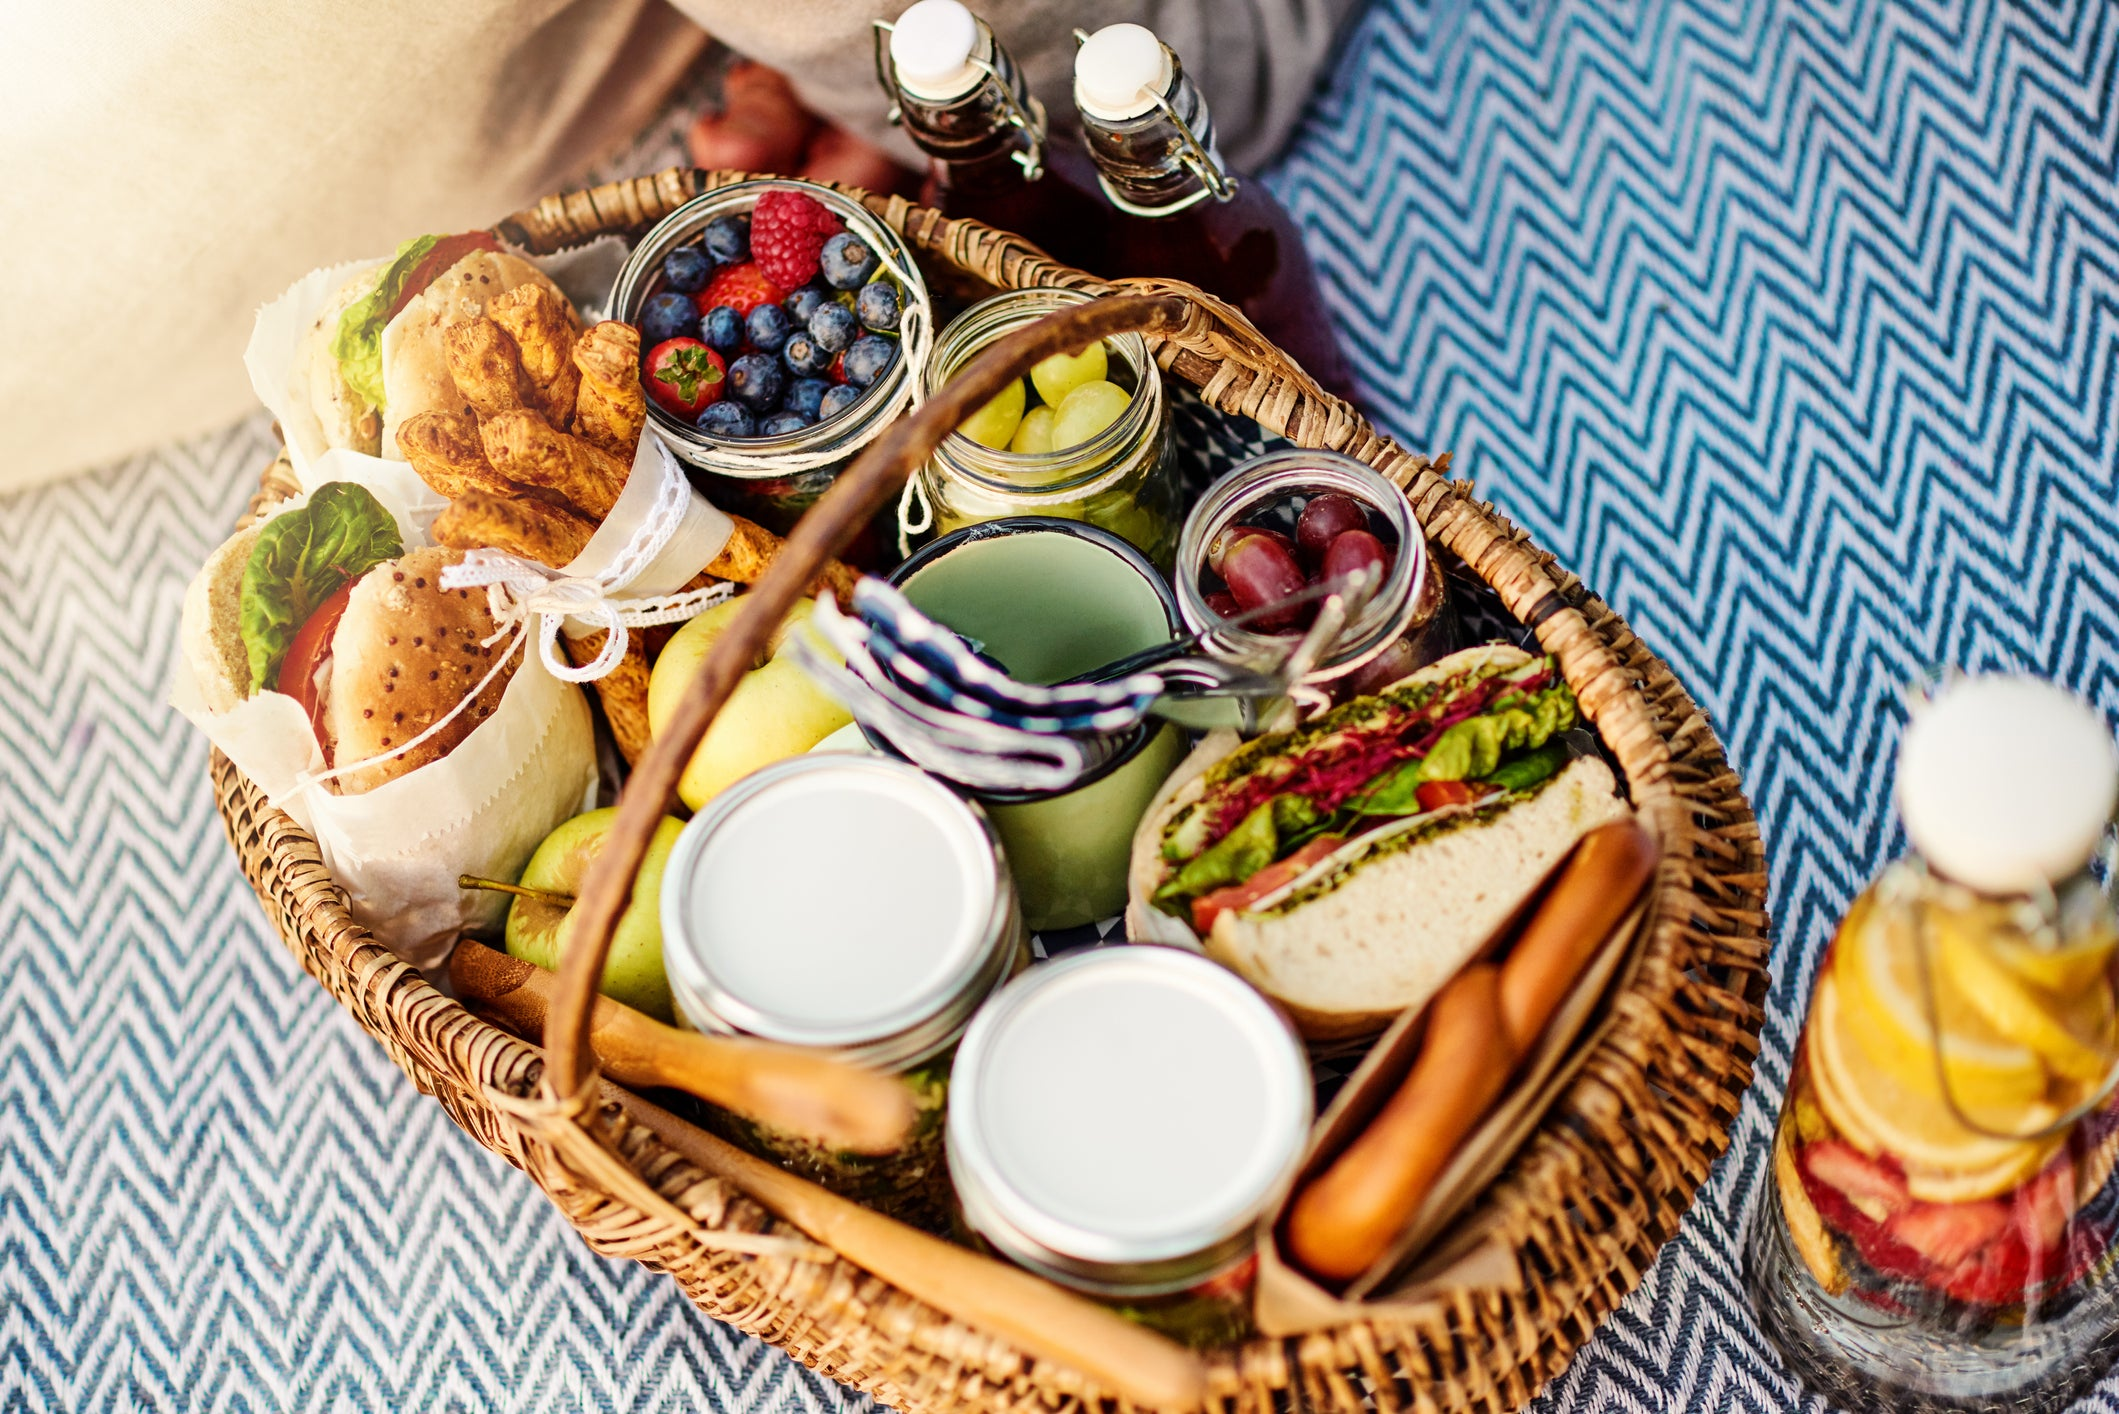 Typical picnic basket contains 'dangerous' levels of salt, health campaigners warn